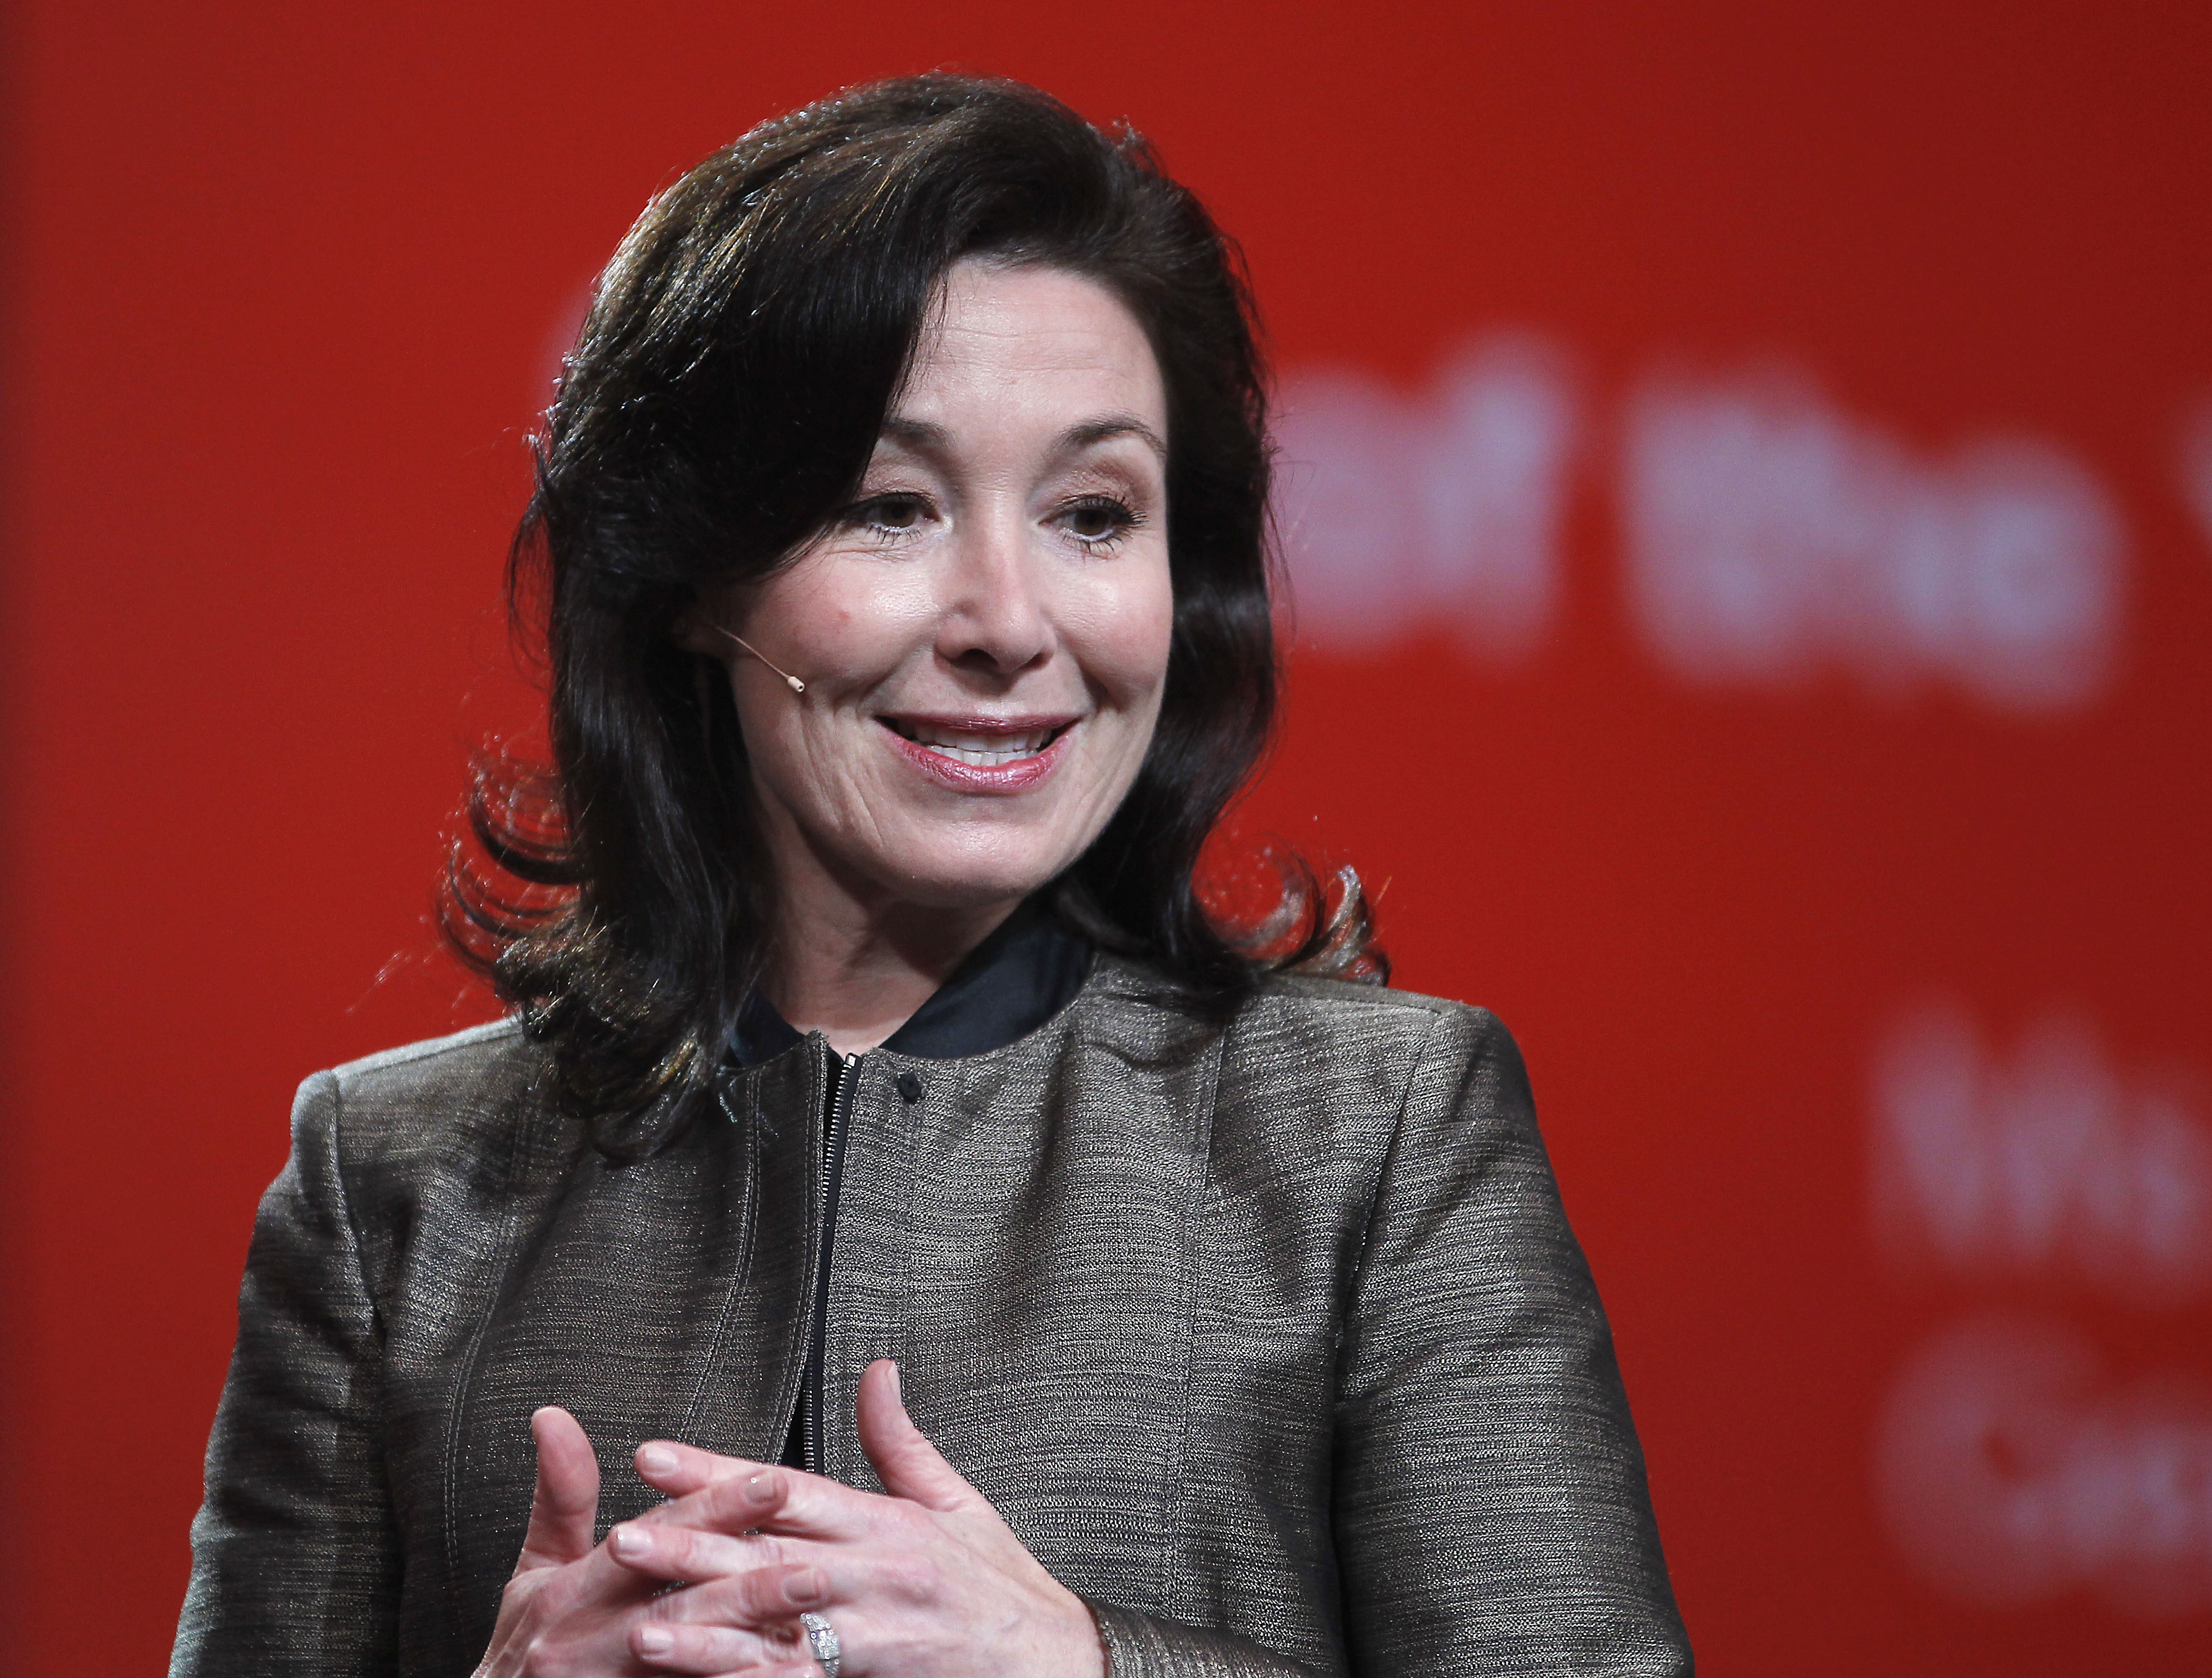 Safra Catz speaks at the Oracle OpenWorld Conference in San Francisco, on Sept. 19, 2010.